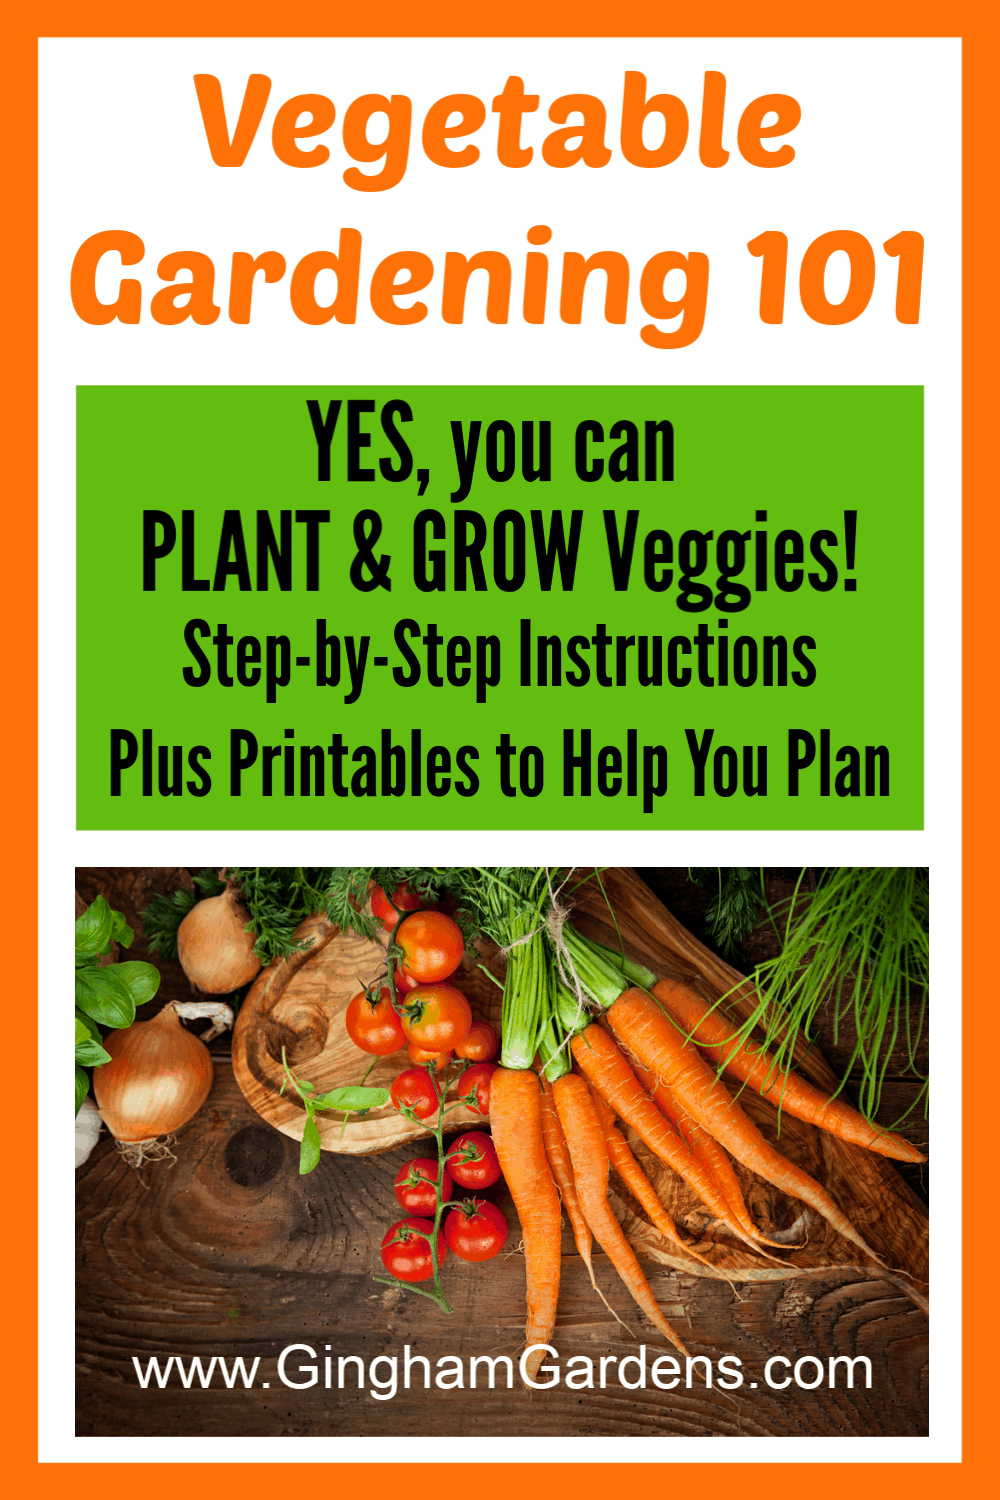 Image of Vegetables with Text Overlay - Vegetable Gardening 101